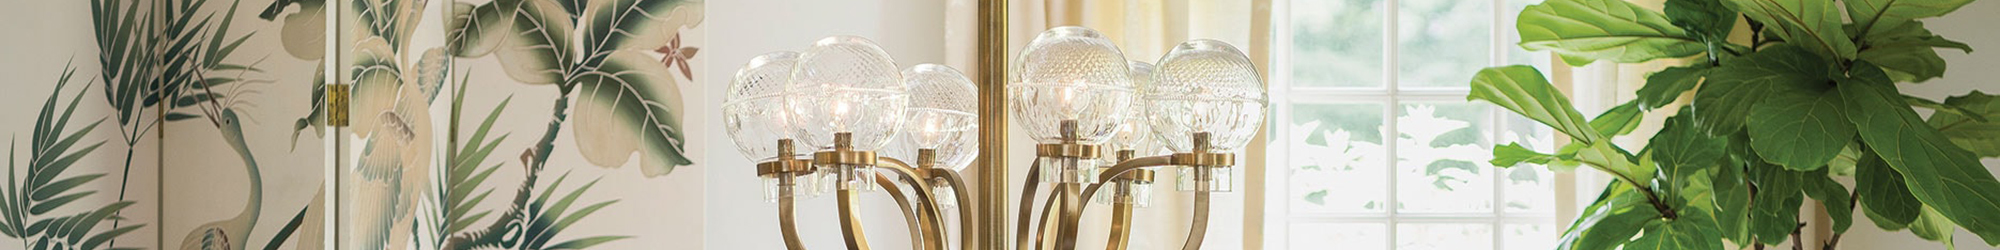 Modern Chandeliers & Wall Sconces